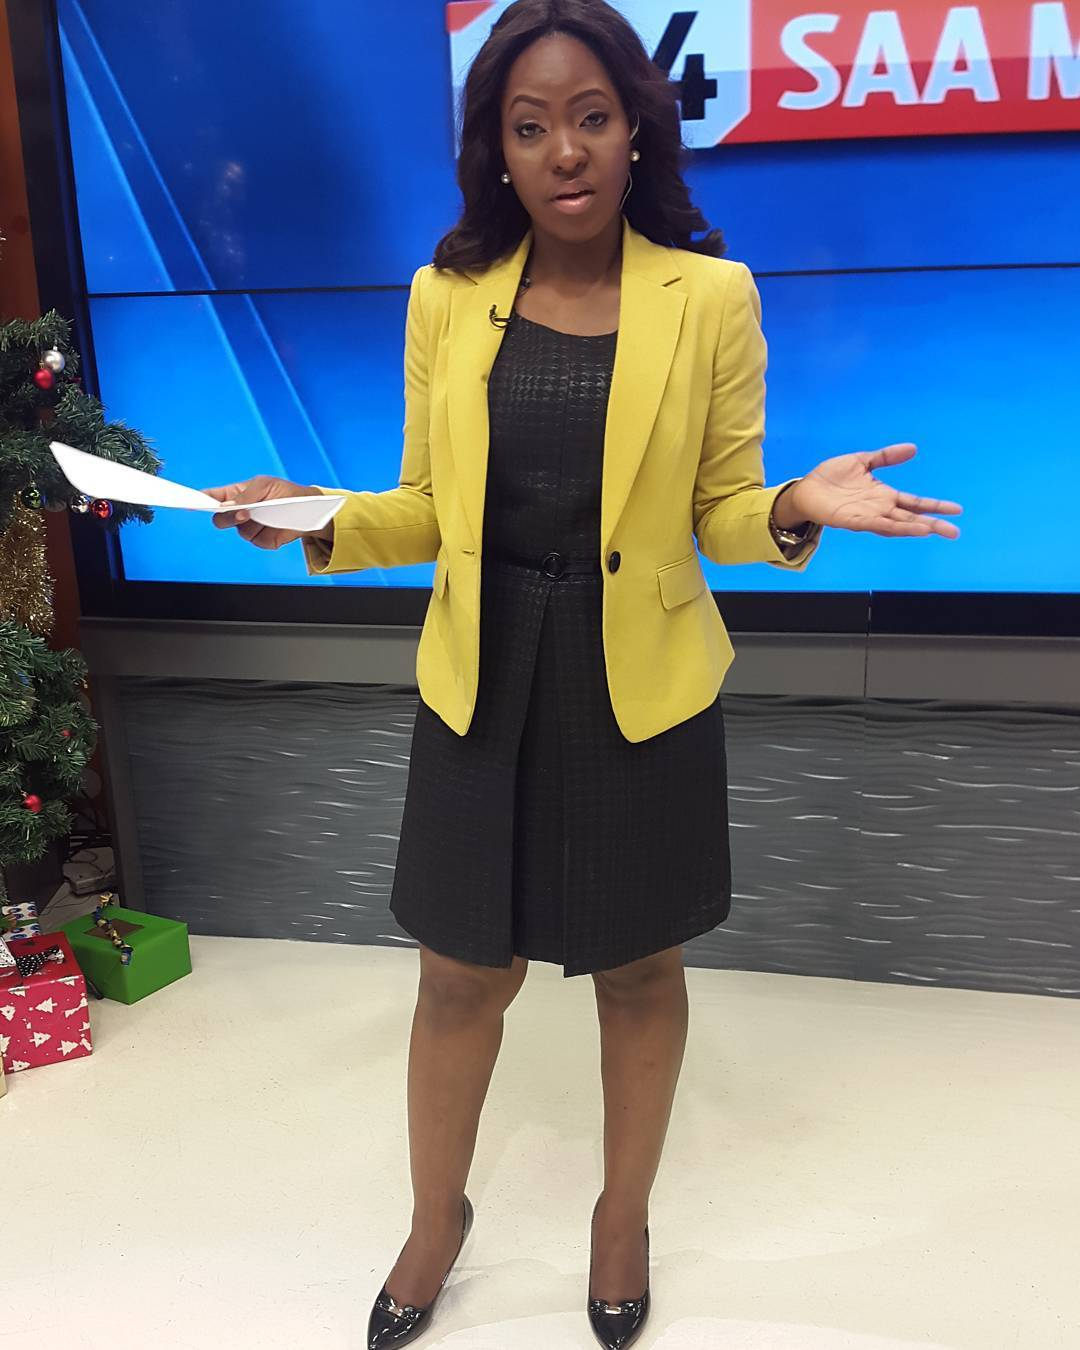 isabella Kituri 3 - Beauty And Brains! Here Are The 25 Top News Anchors Of 2017